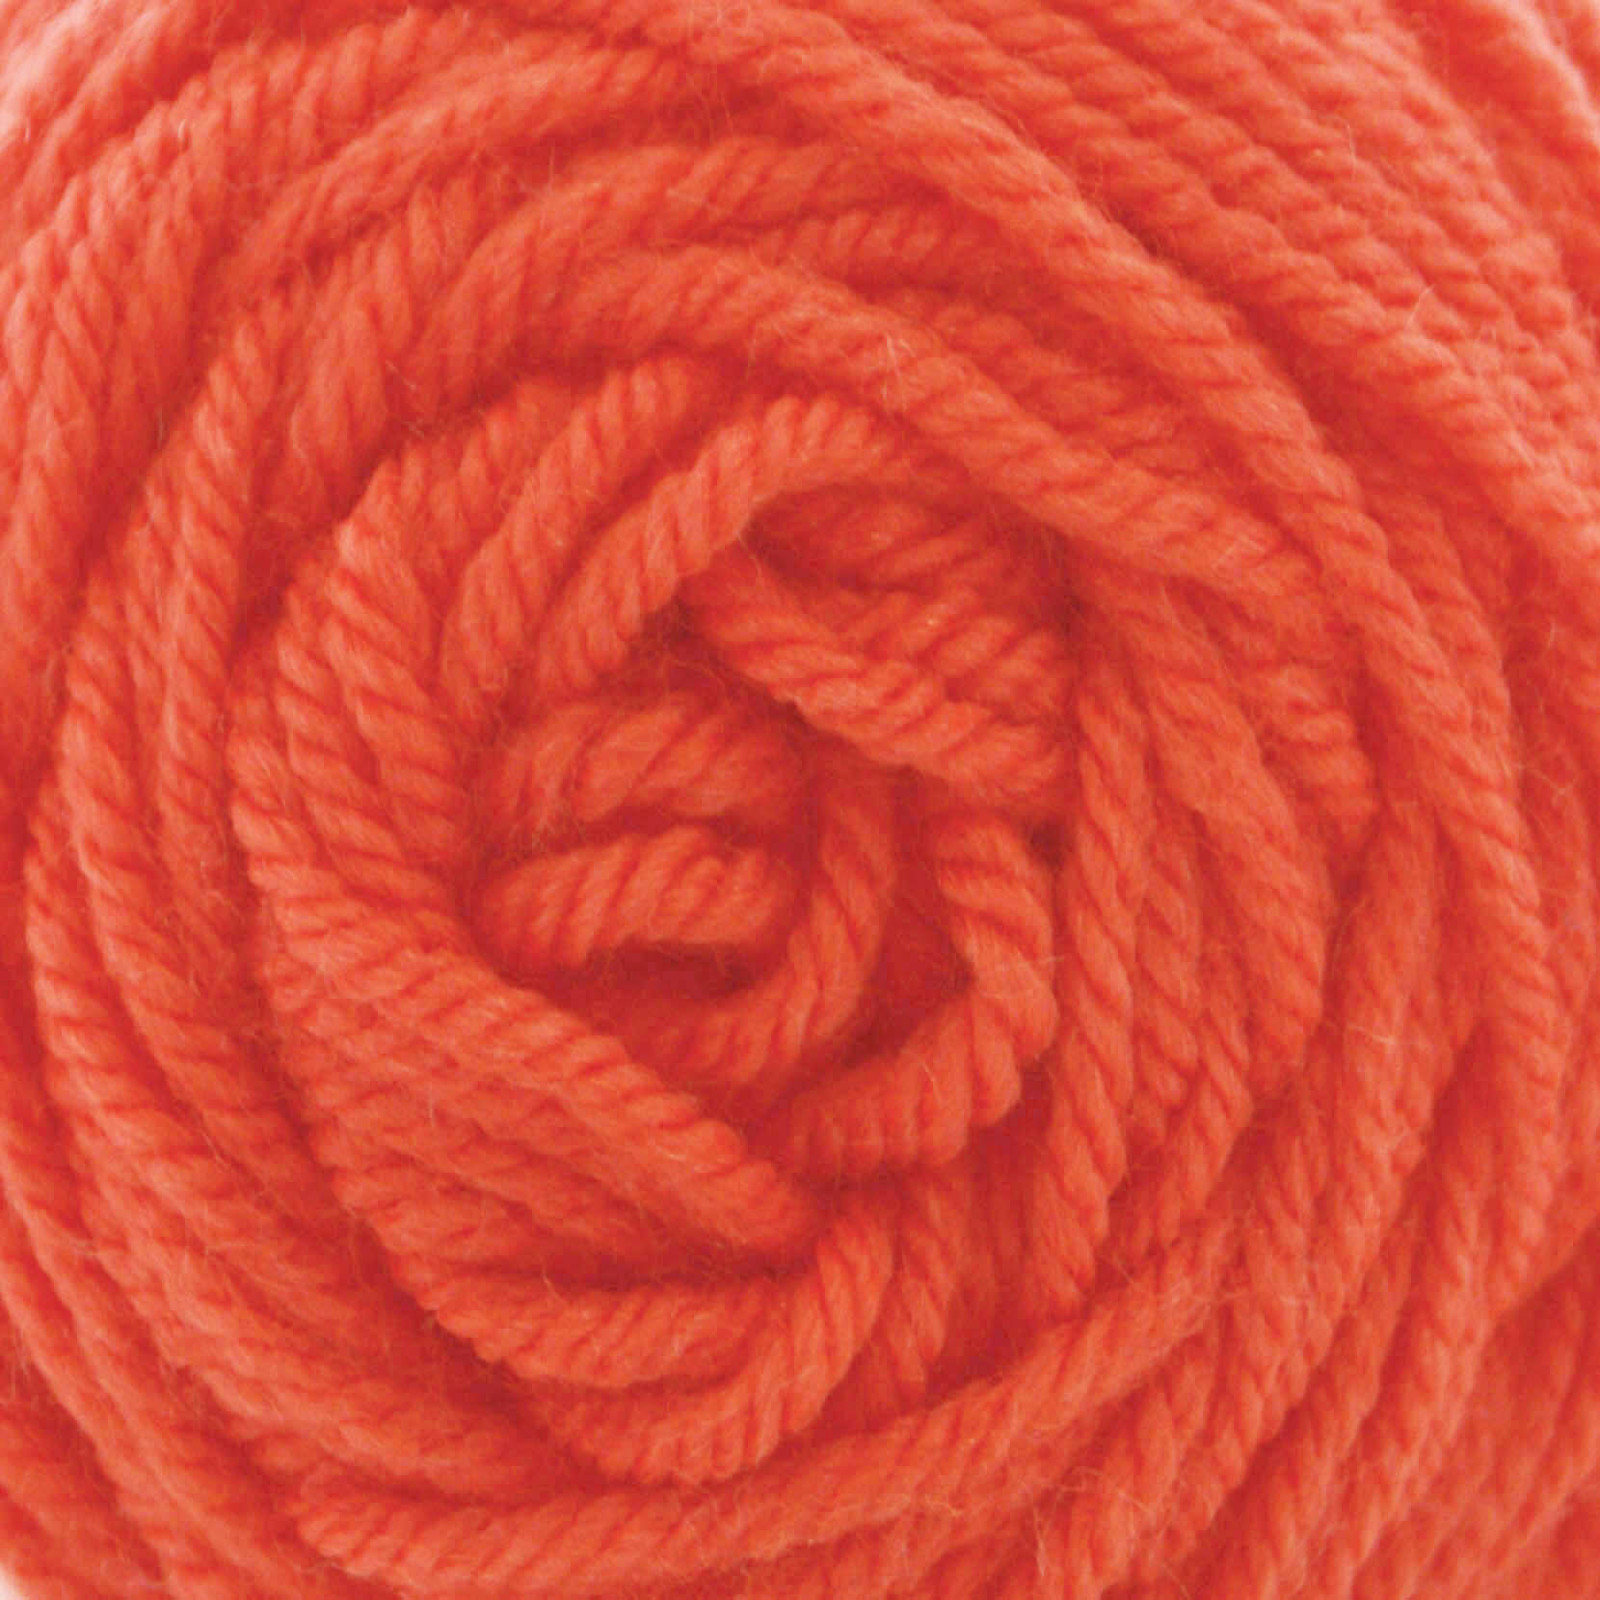 ... Value Neon Double Knitting Yarn 100 Acrylic DK Wool 100g Ball eBay